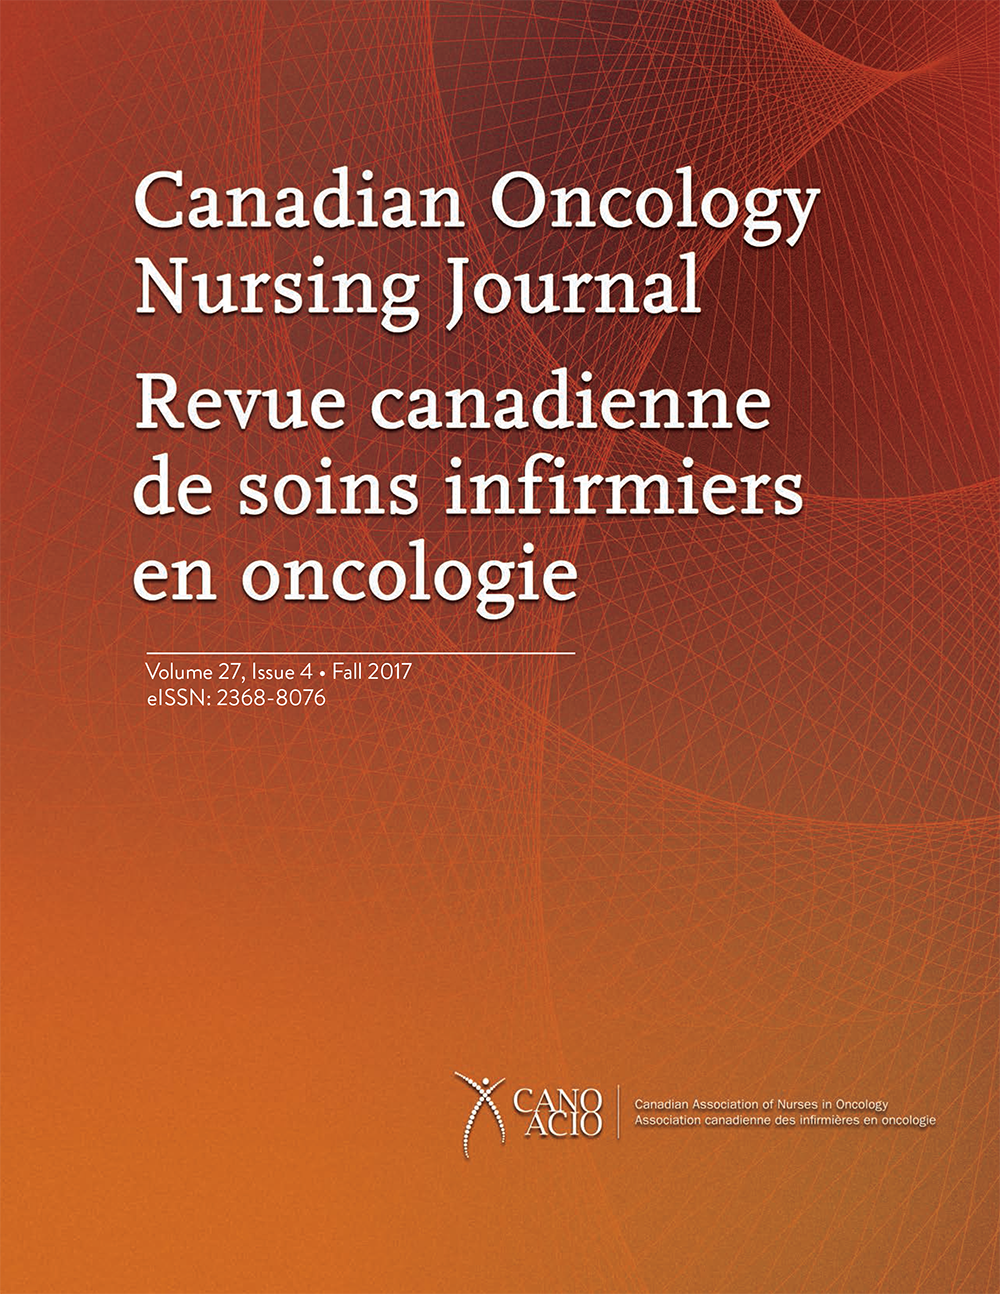 Canadian Oncology Nursing Journal cover